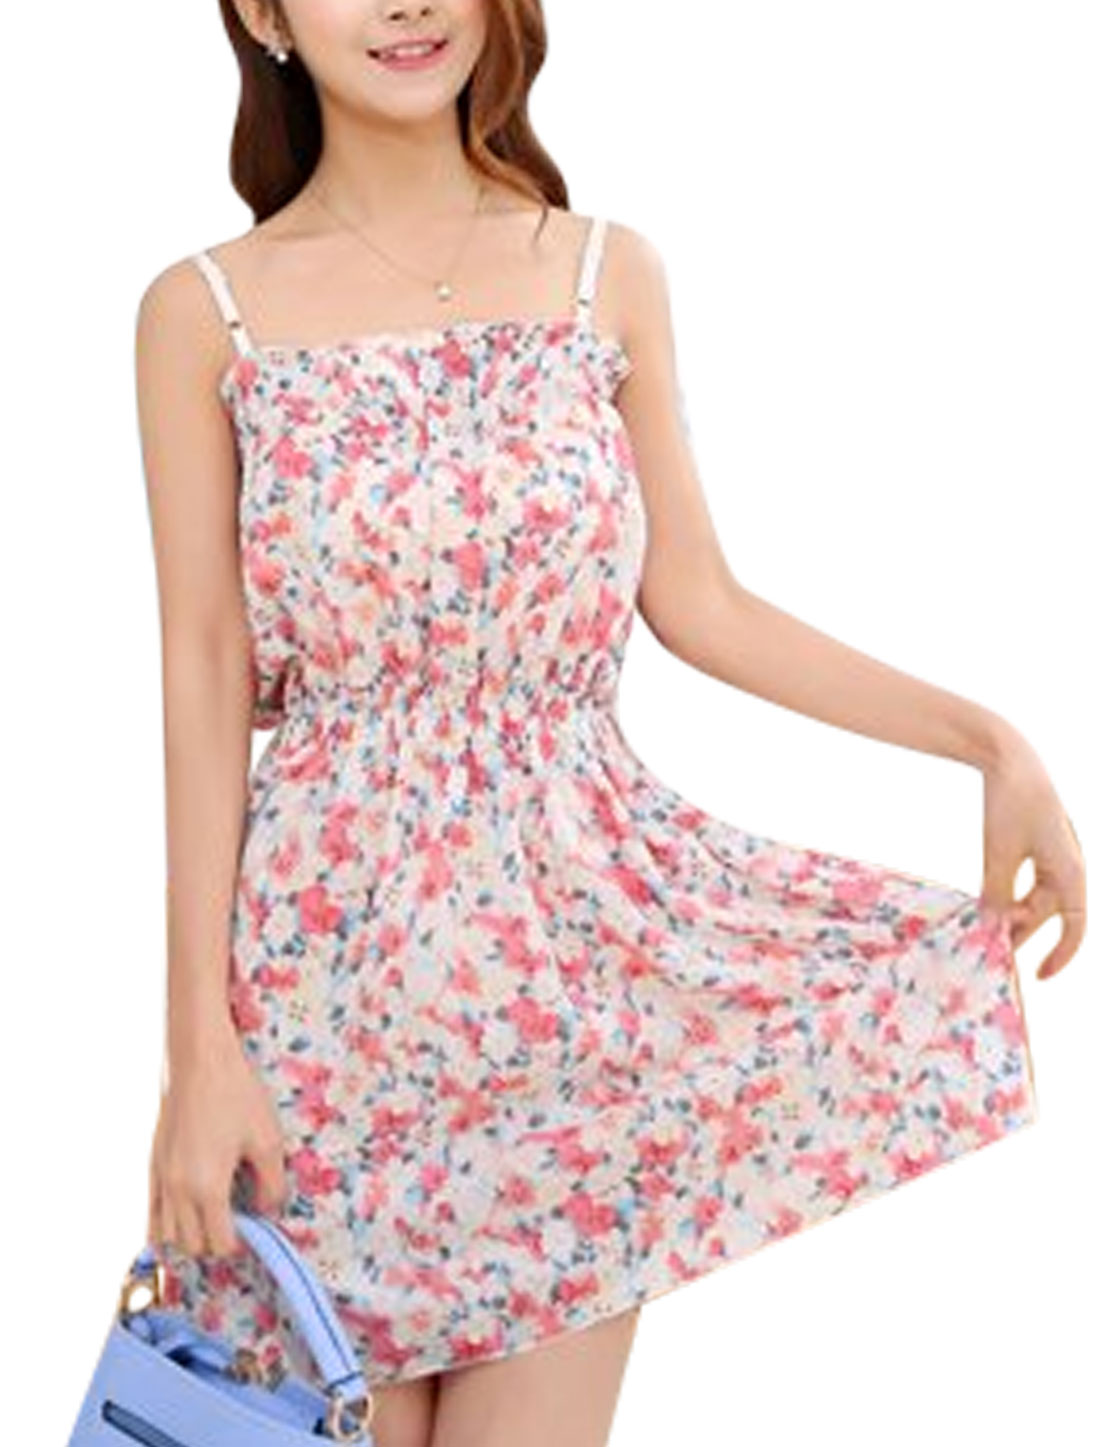 Ladies Sleeveless Spaghetti Straps Flower Prints Unlined Sundress Multicolor XS